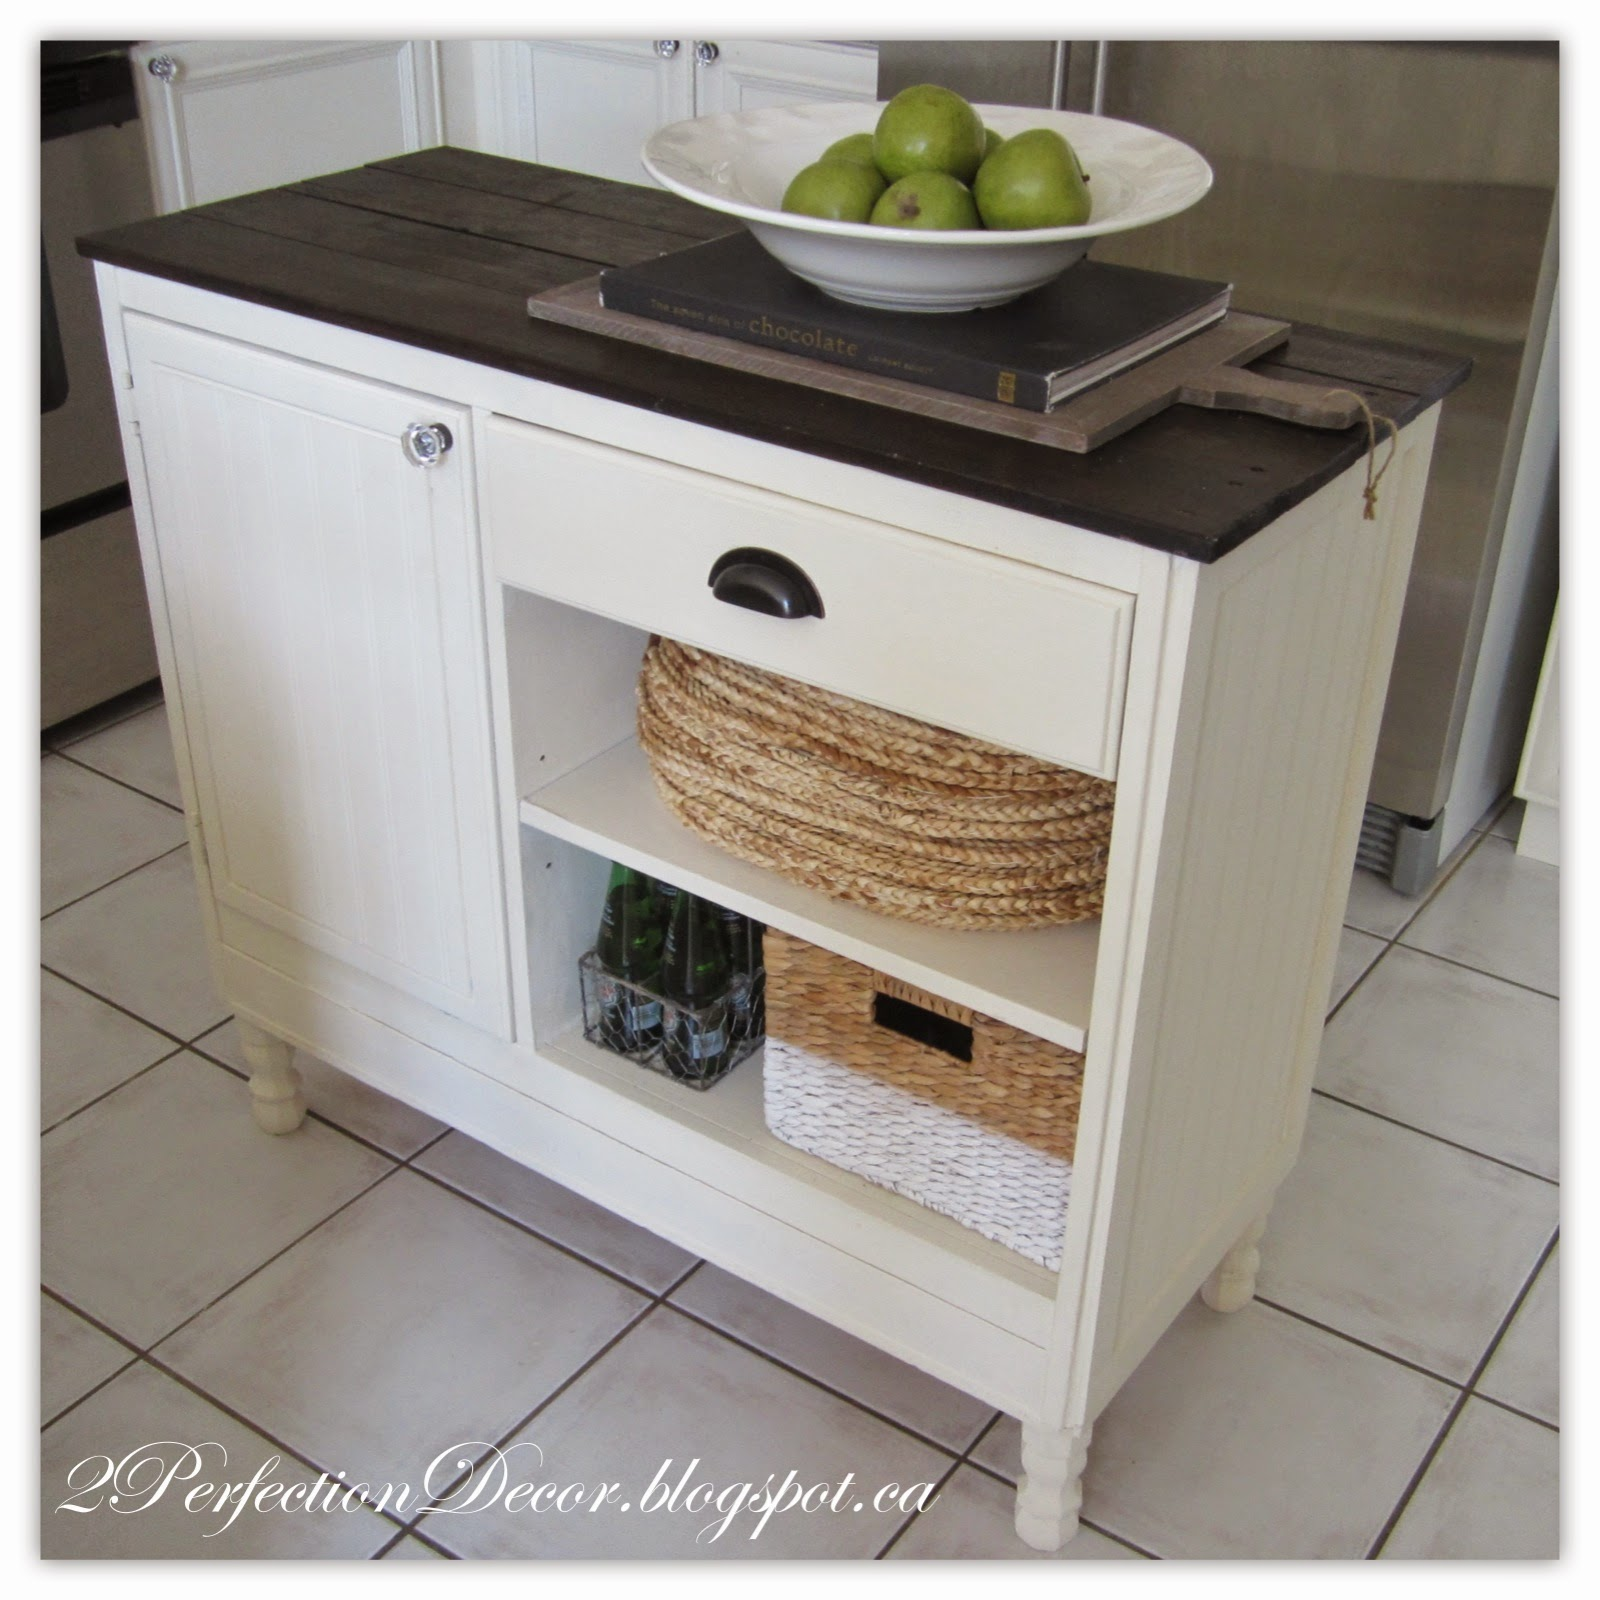 Superb Beadboard kitchen island with open shelves and plank wood top by Perfection Decor featured on